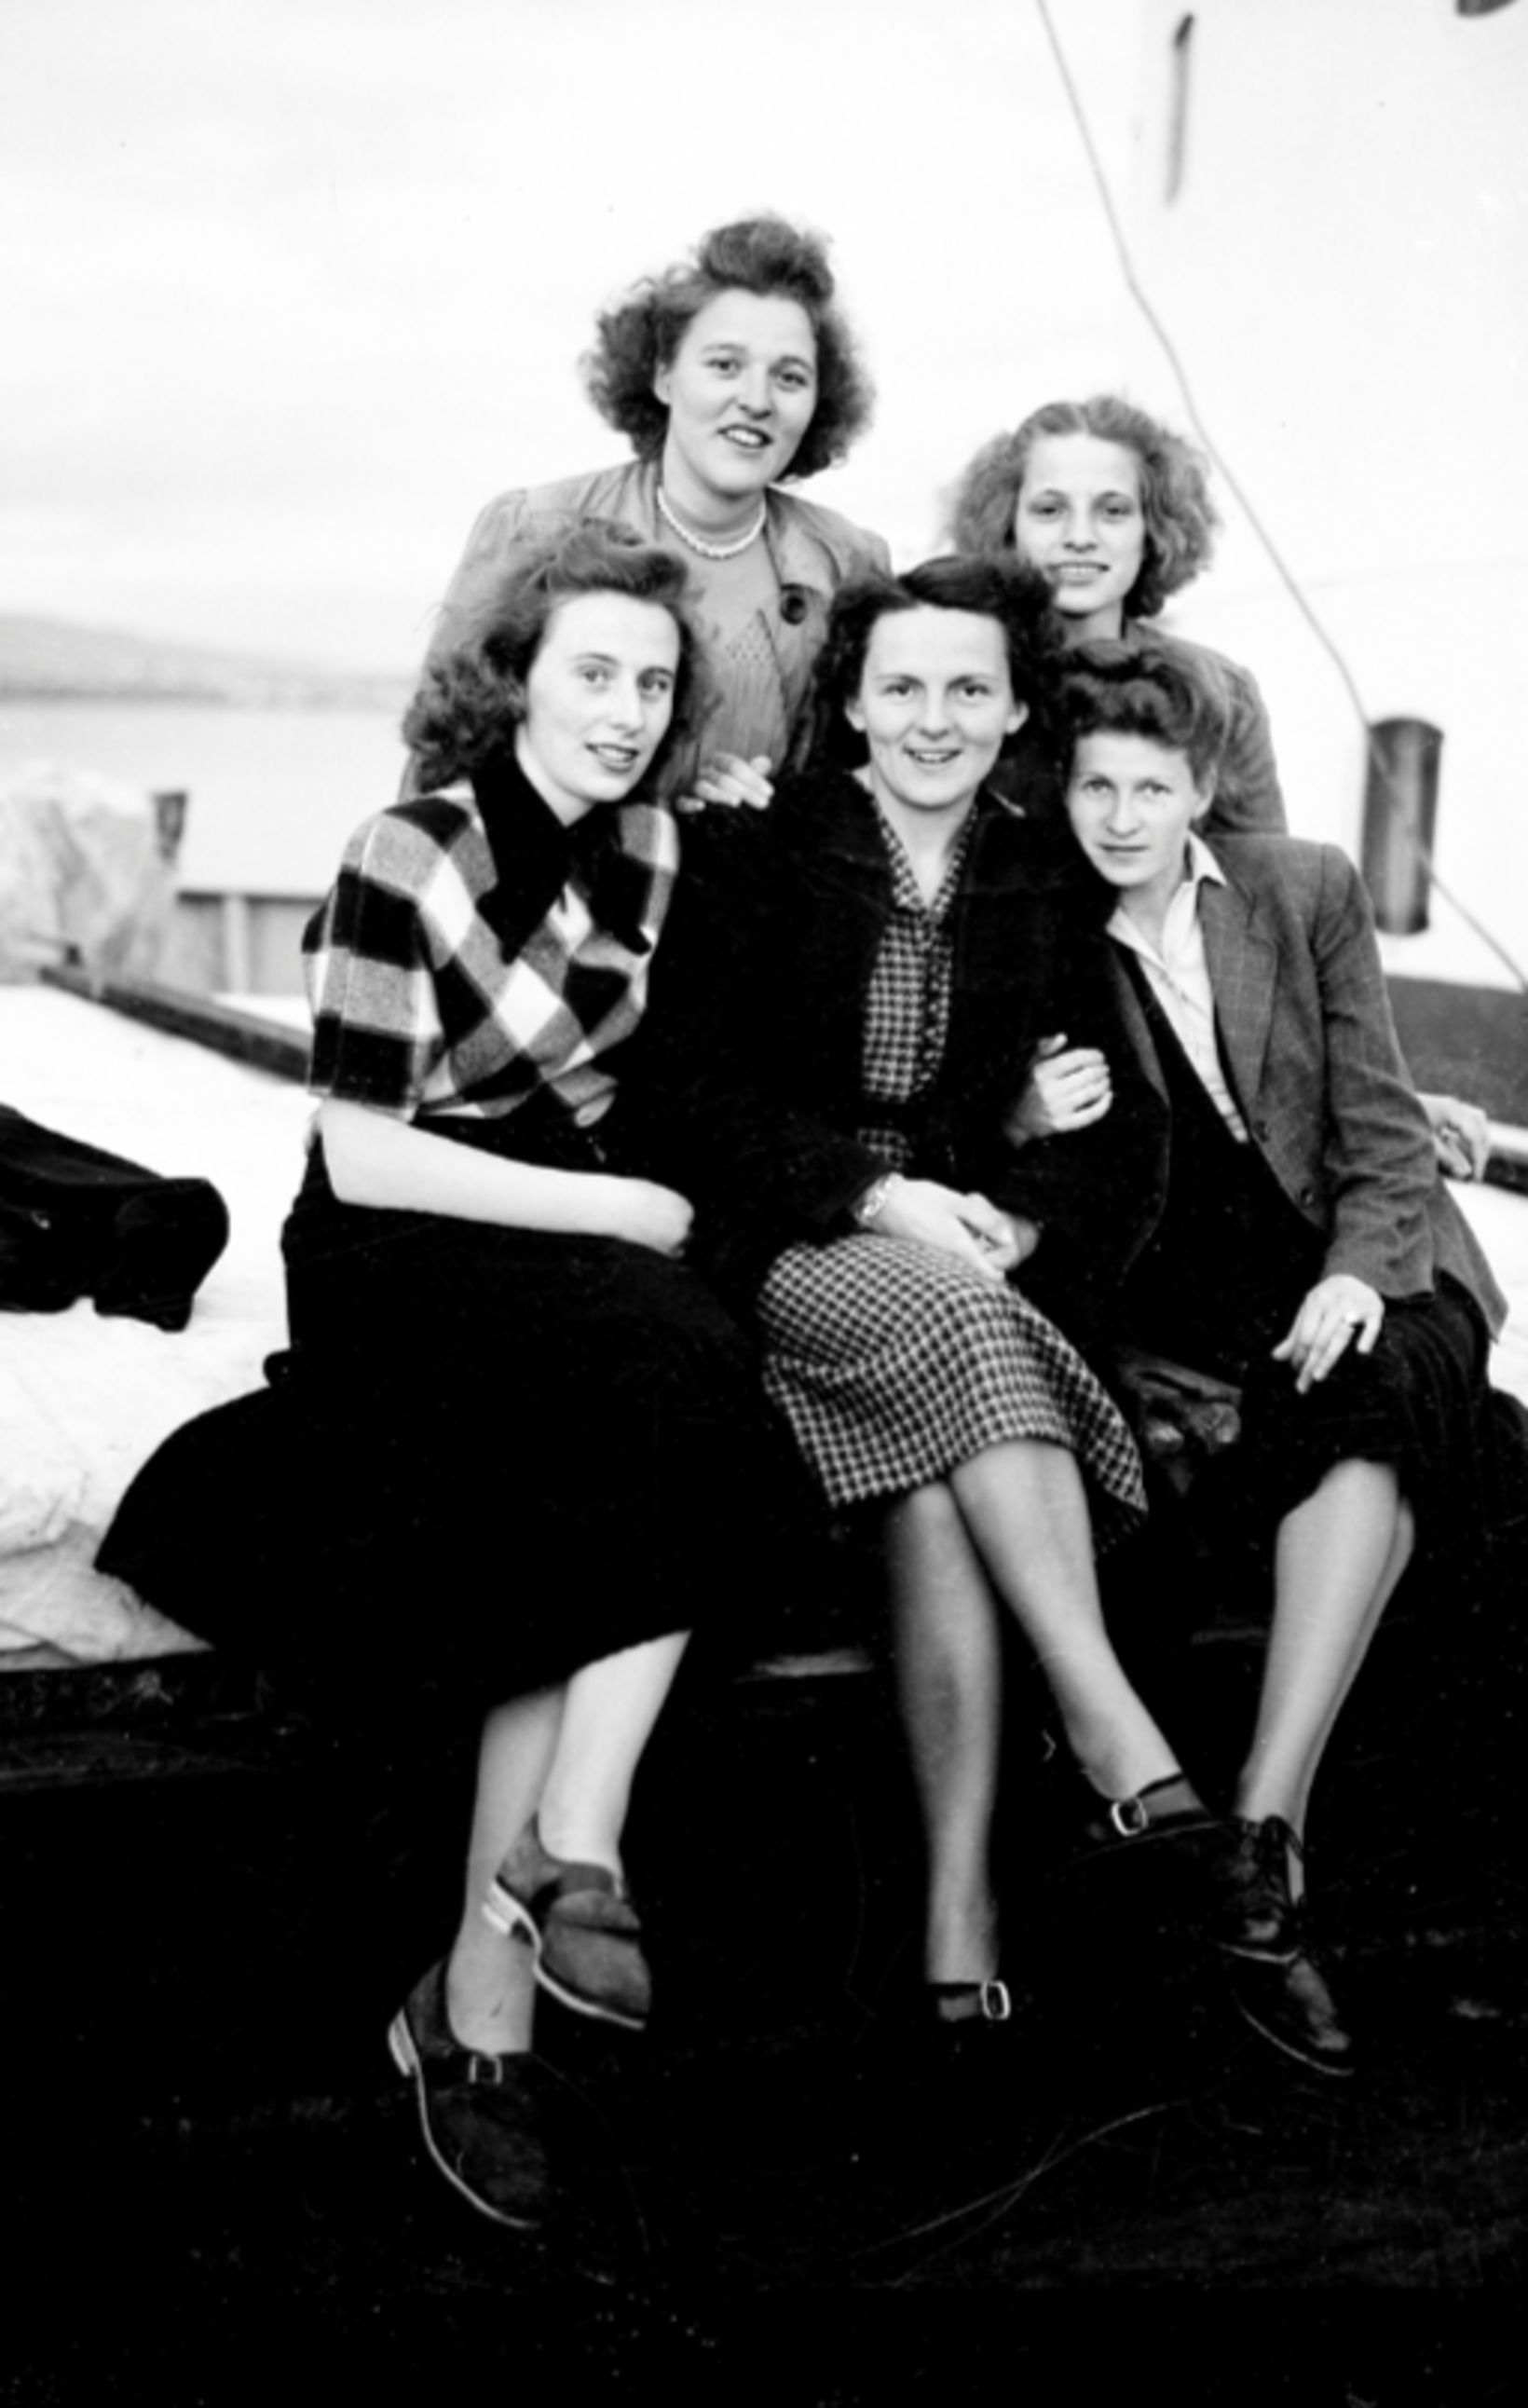 German women, just arrived in Iceland, June 8, 1949.